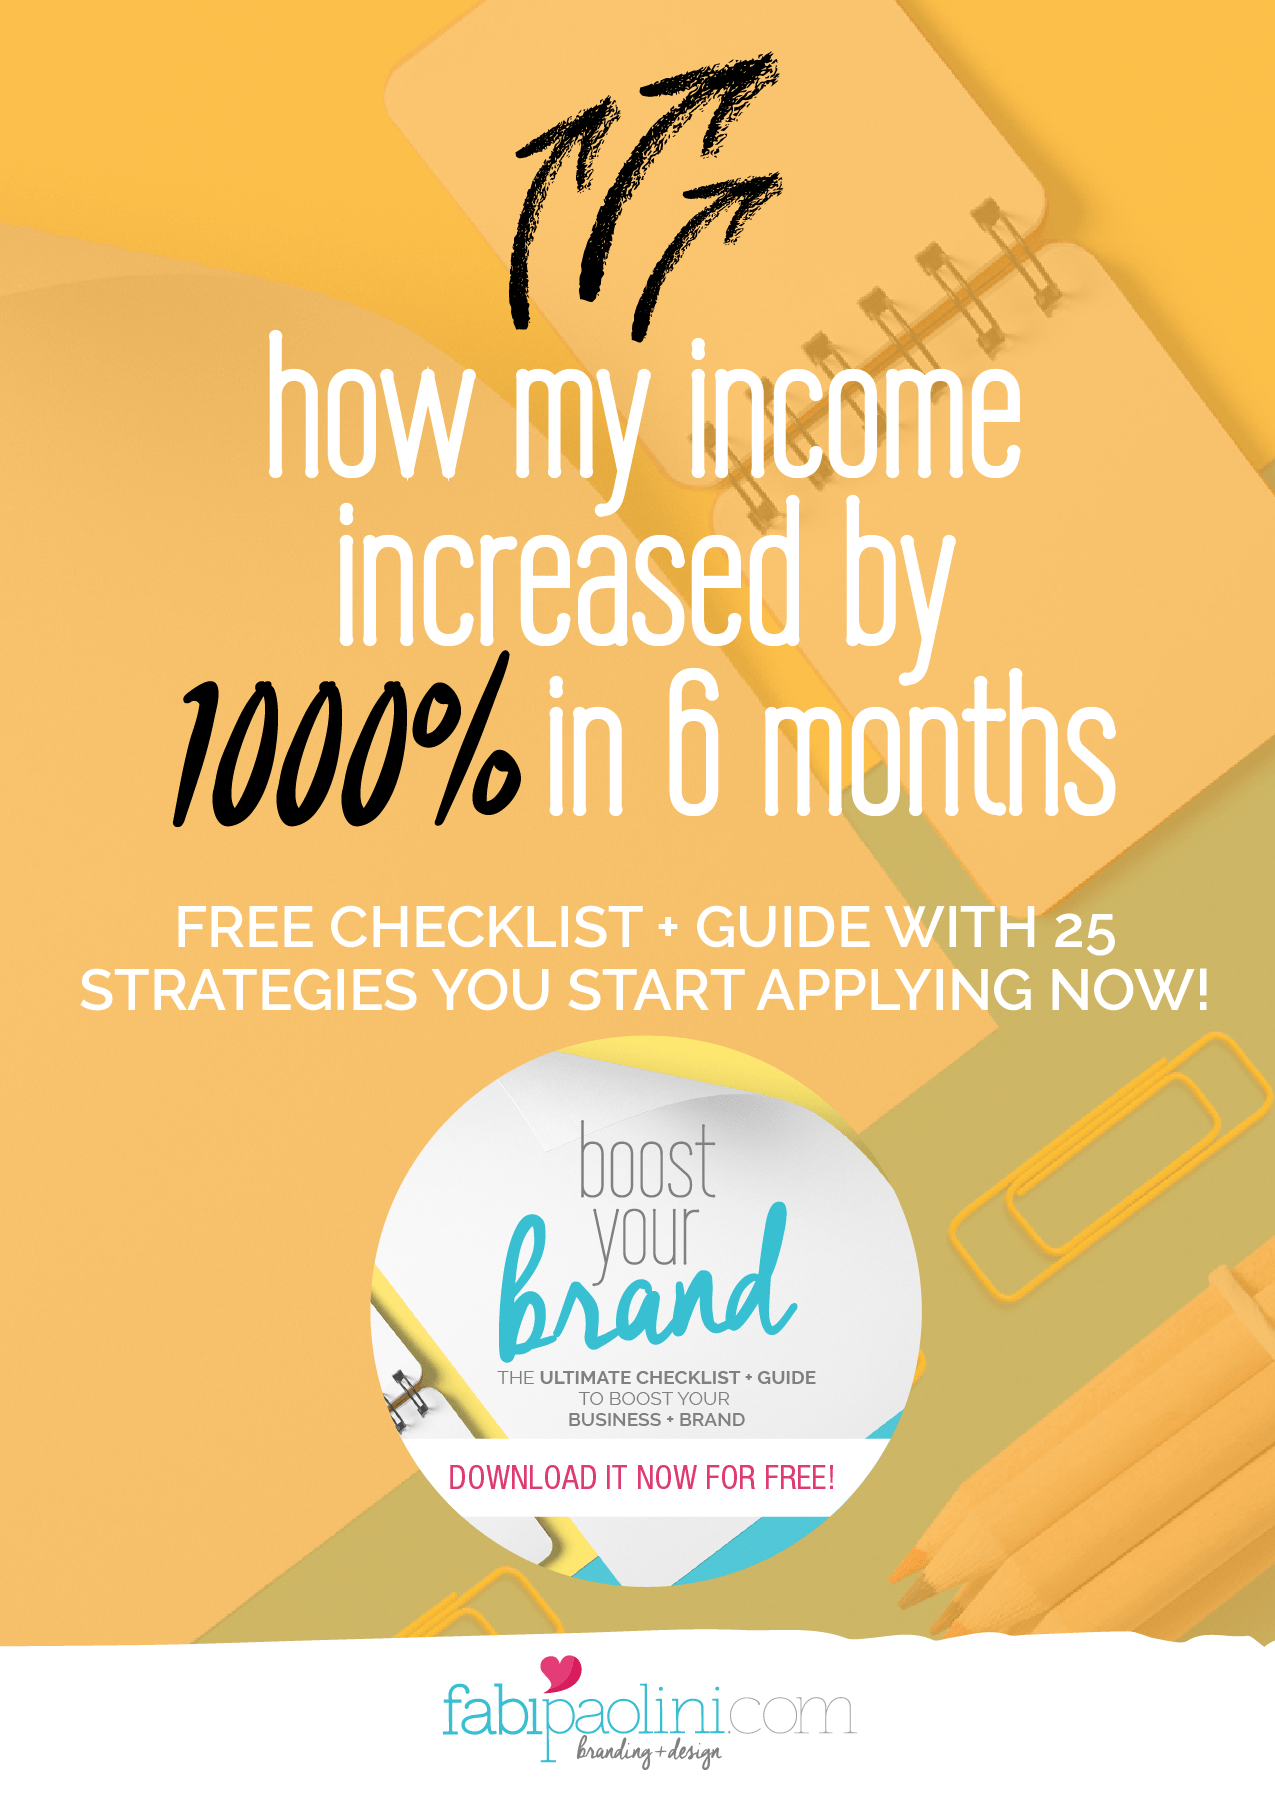 Boost Your Brand. Ultimate checklist and guide for entrepreneurs to build their brands + business through branding, design, social media, sharing, content creation, sales funnels. Tips, ideas, advice on Brand building